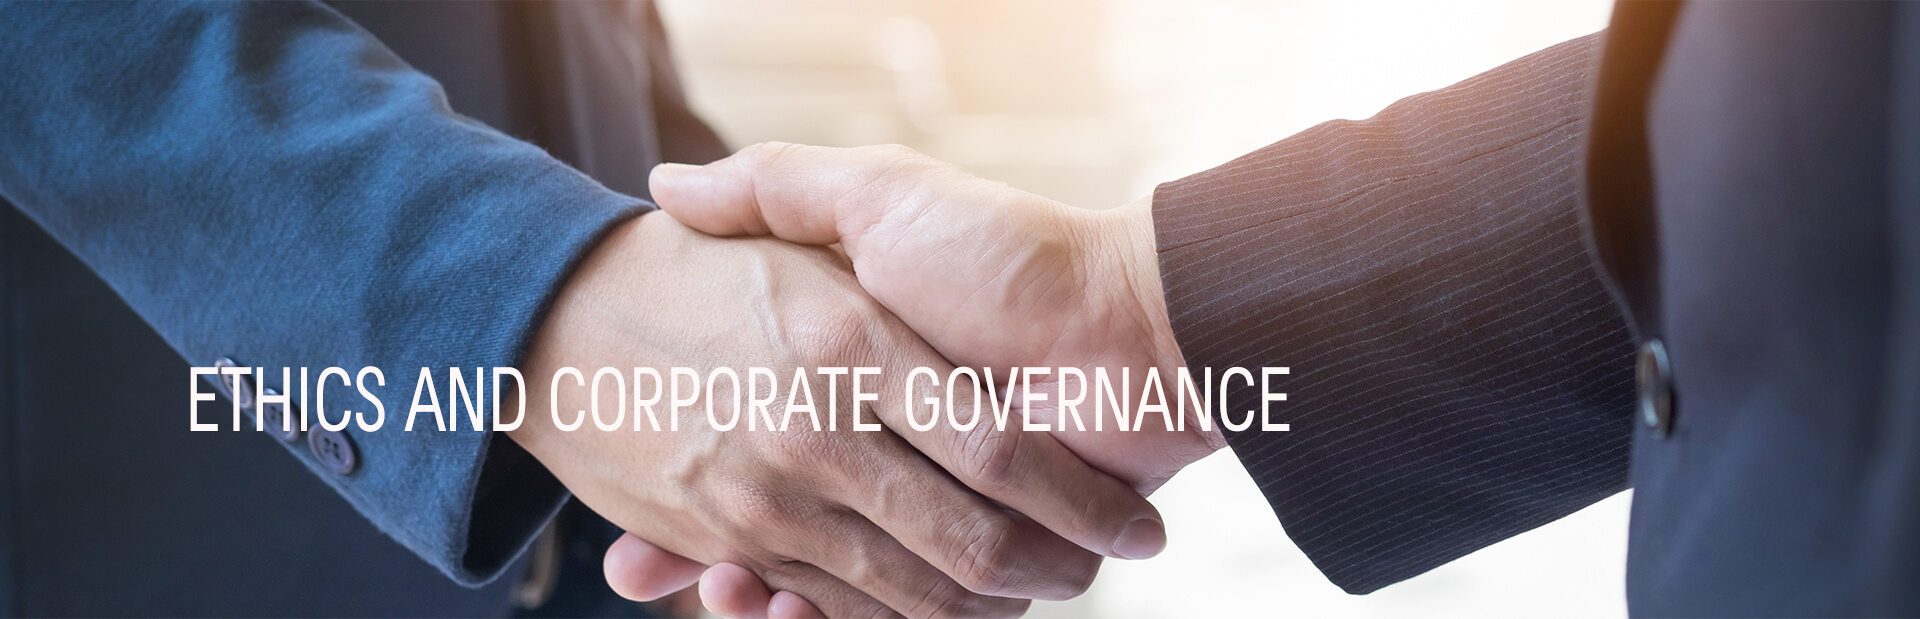 Ethics and corporate governance